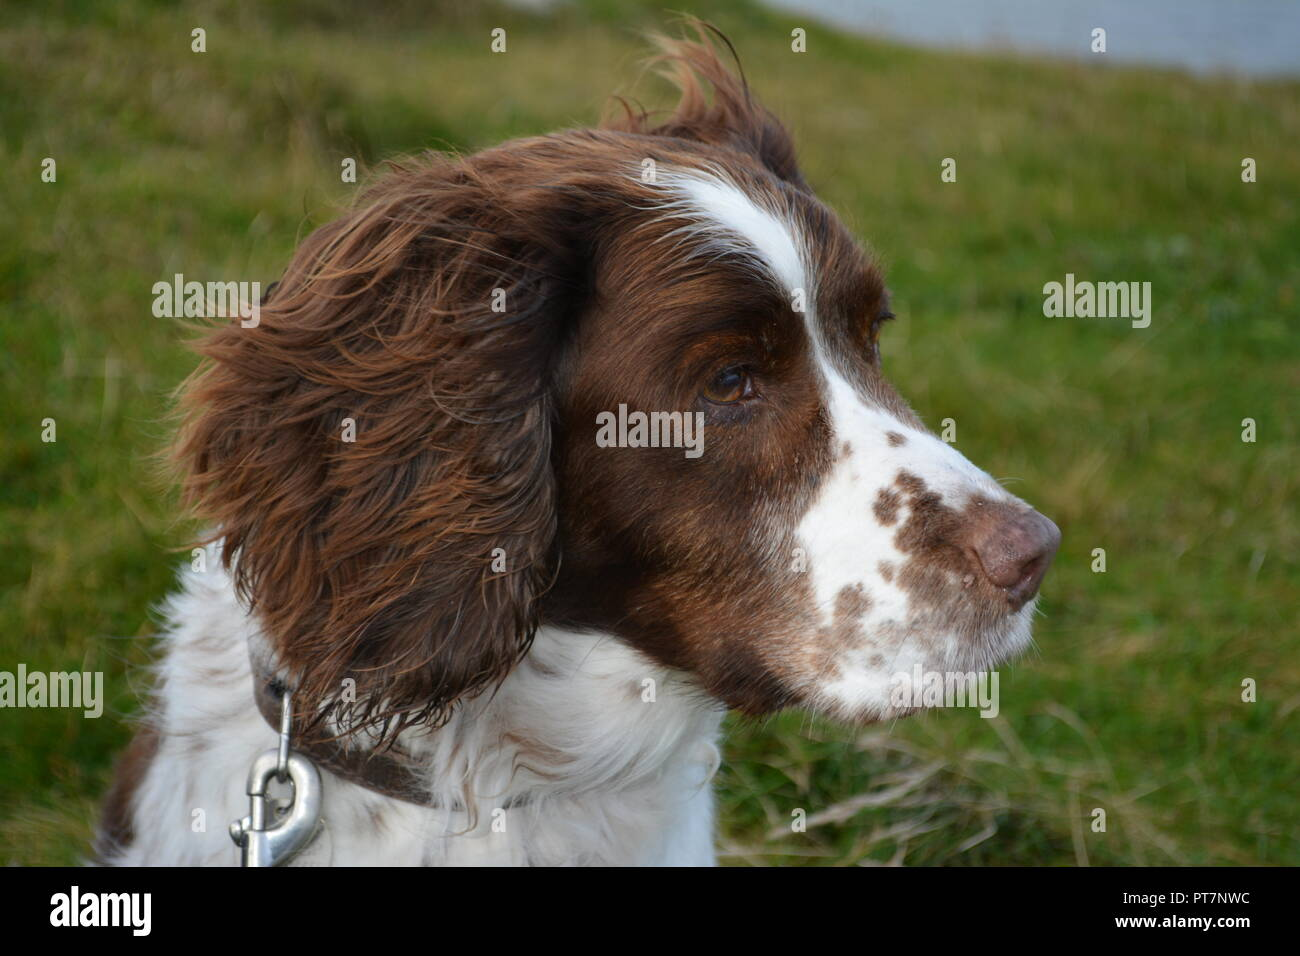 Close up of liver and white English springer spaniels head sitting on grass looking away from the camera into the distance re pets sitting obedience - Stock Image